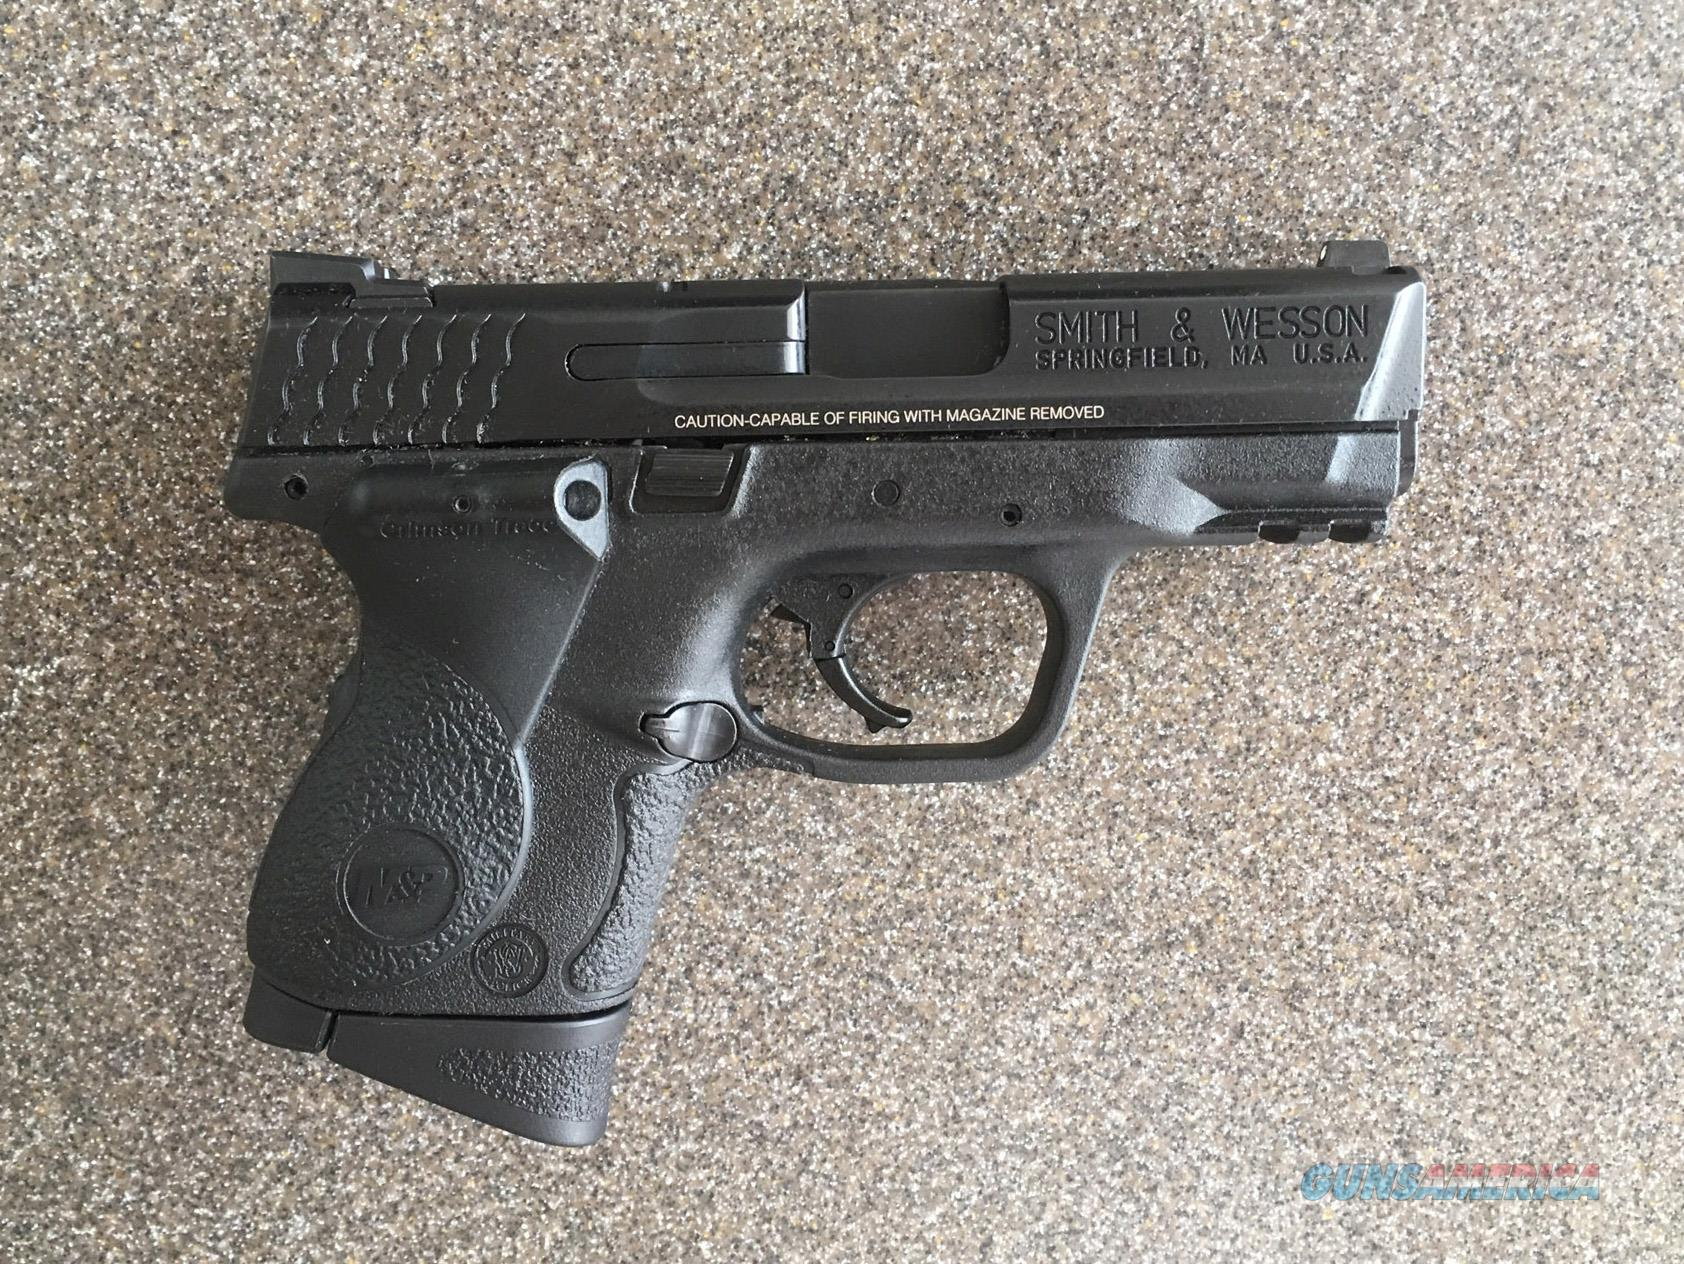 SMITH & WESSON M&P9C COMPACT W/CRIMSON TRACE LASER GRIPS  Guns > Pistols > Smith & Wesson Pistols - Autos > Polymer Frame